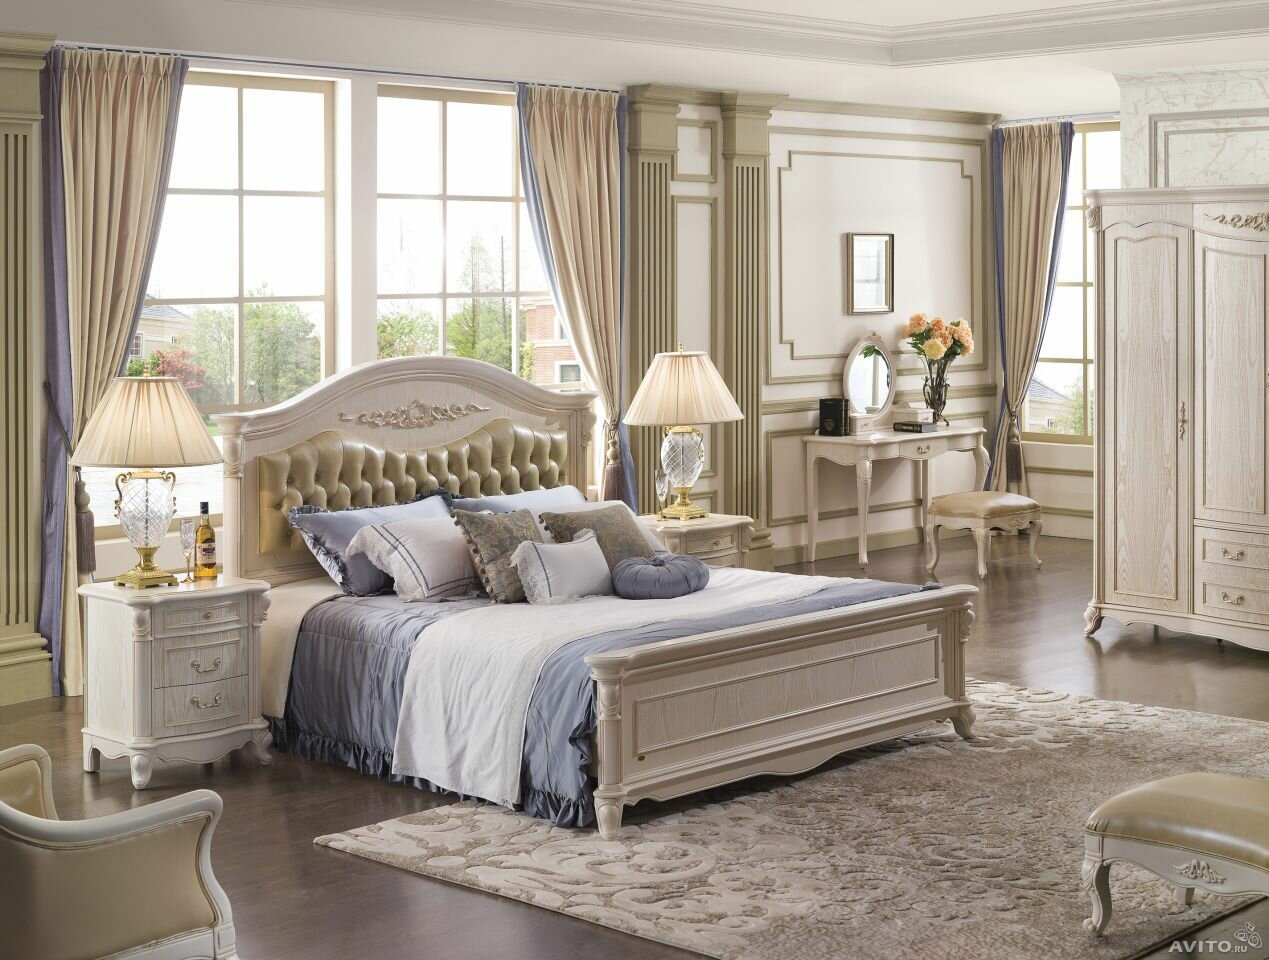 15 world 39 s most beautiful bedrooms mostbeautifulthings for Glamorous bedroom pictures